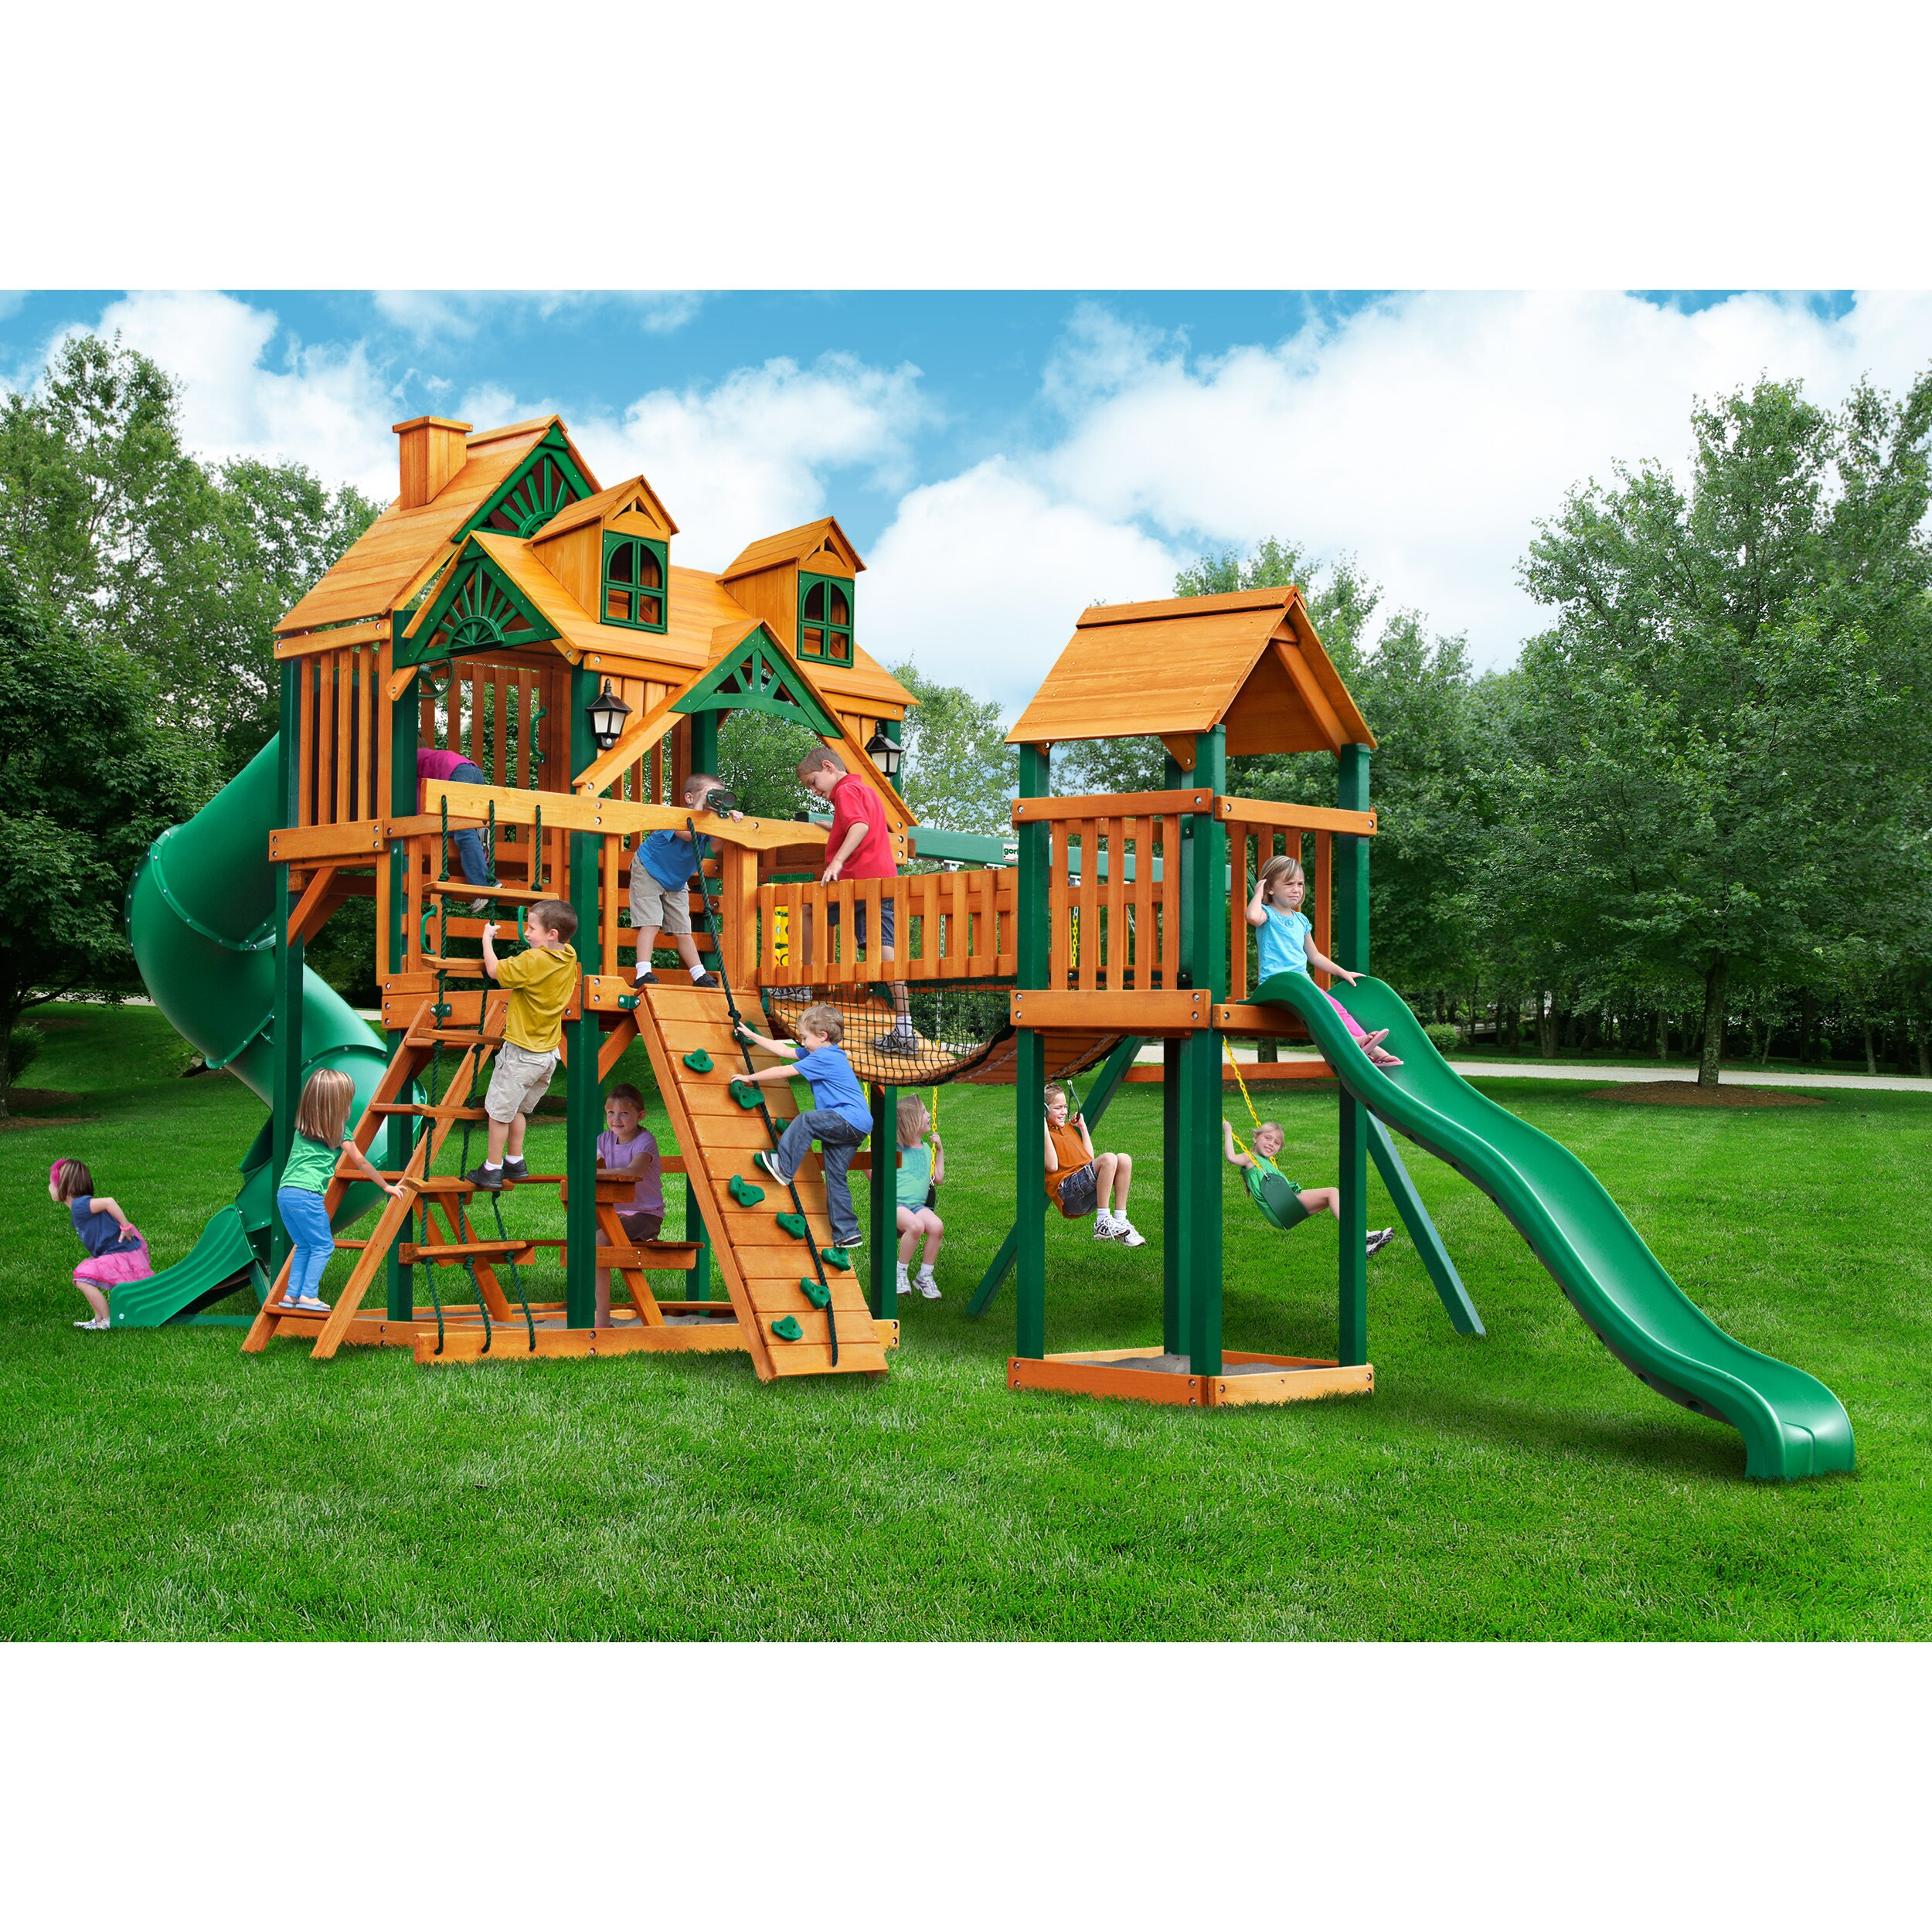 Gorilla playsets malibu treasure trove i swing set for Gorilla playsets